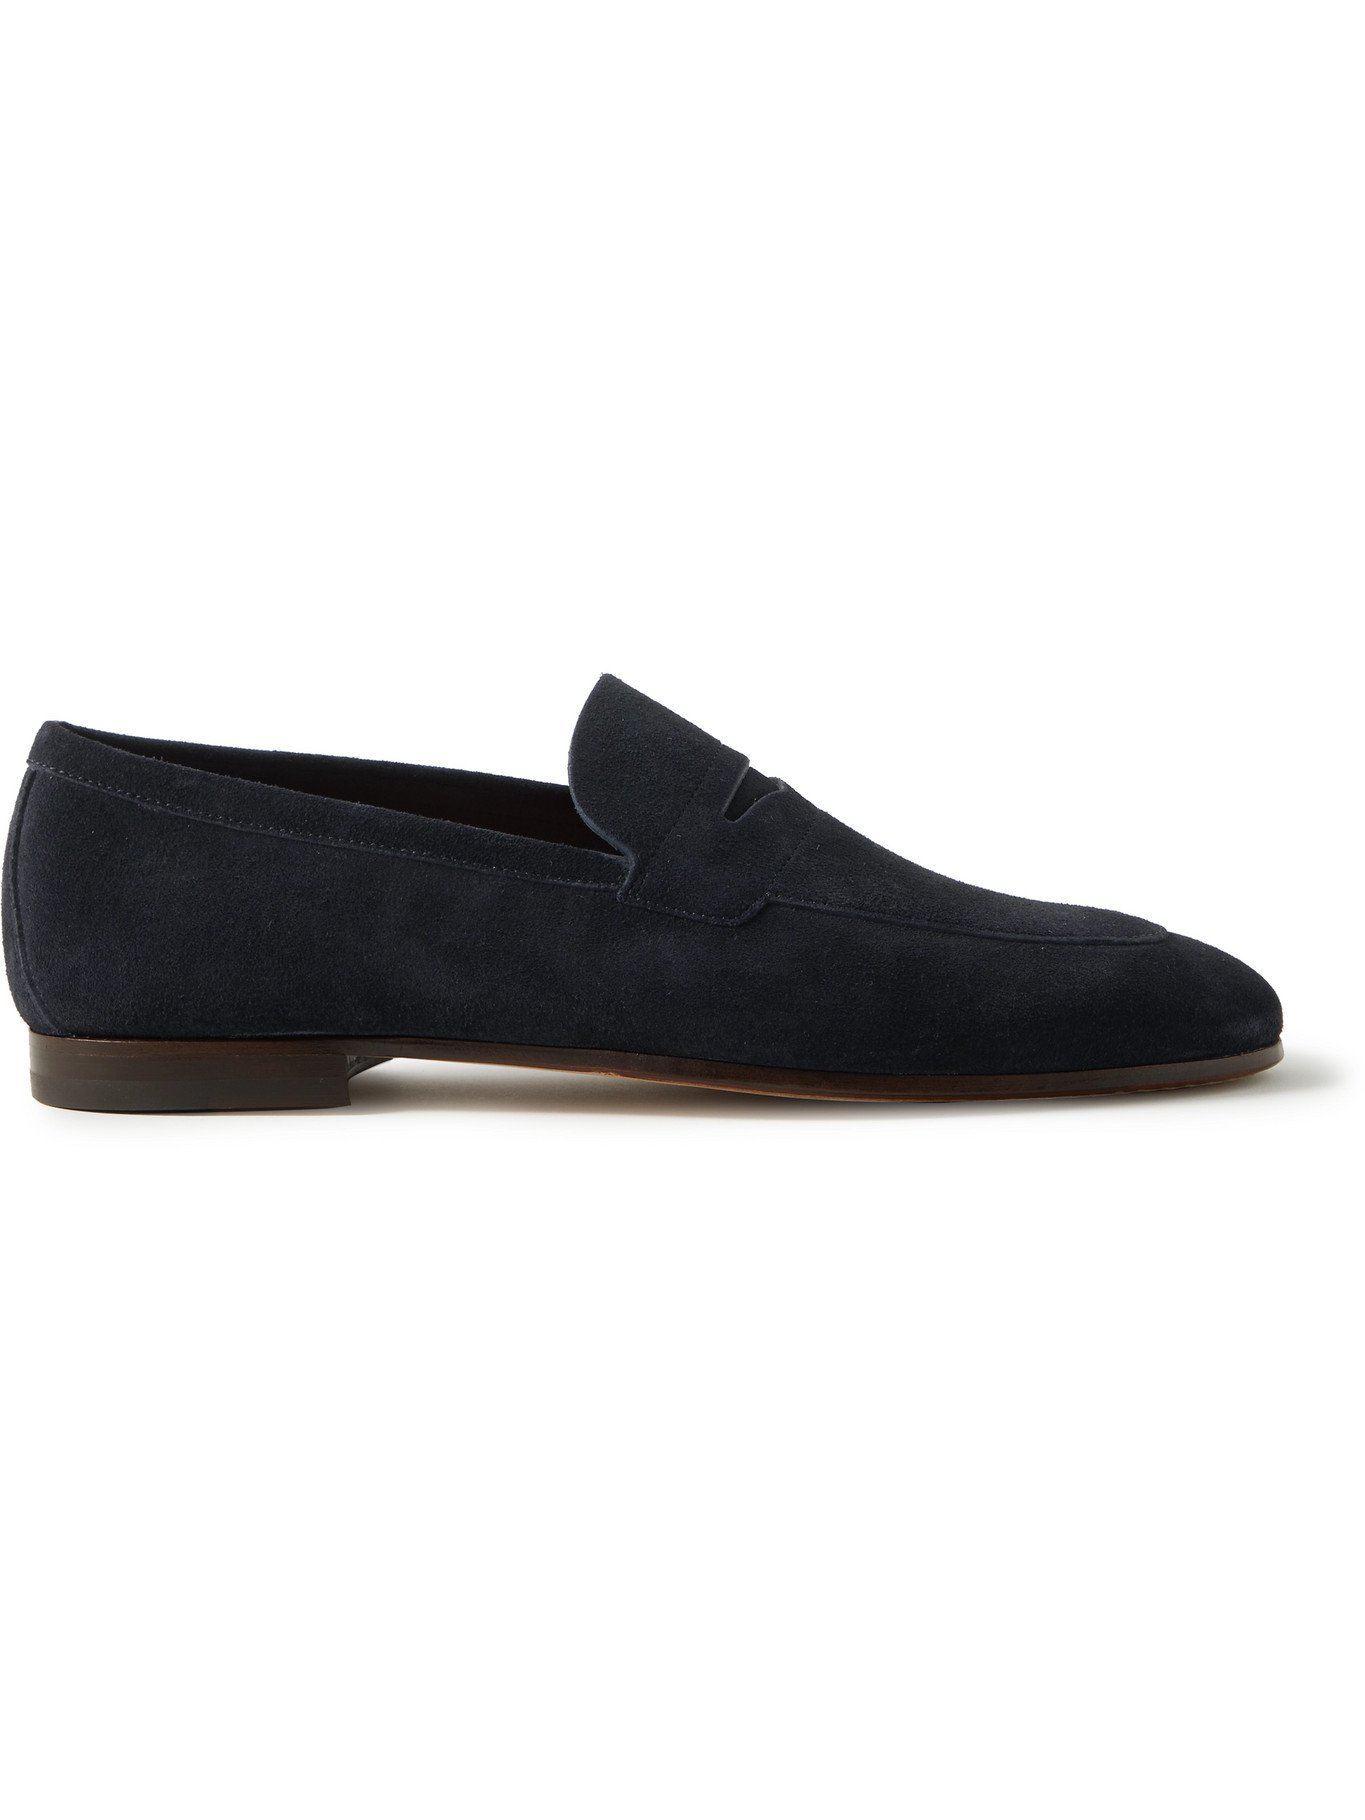 HUGO BOSS - Suede Penny Loafers - Blue